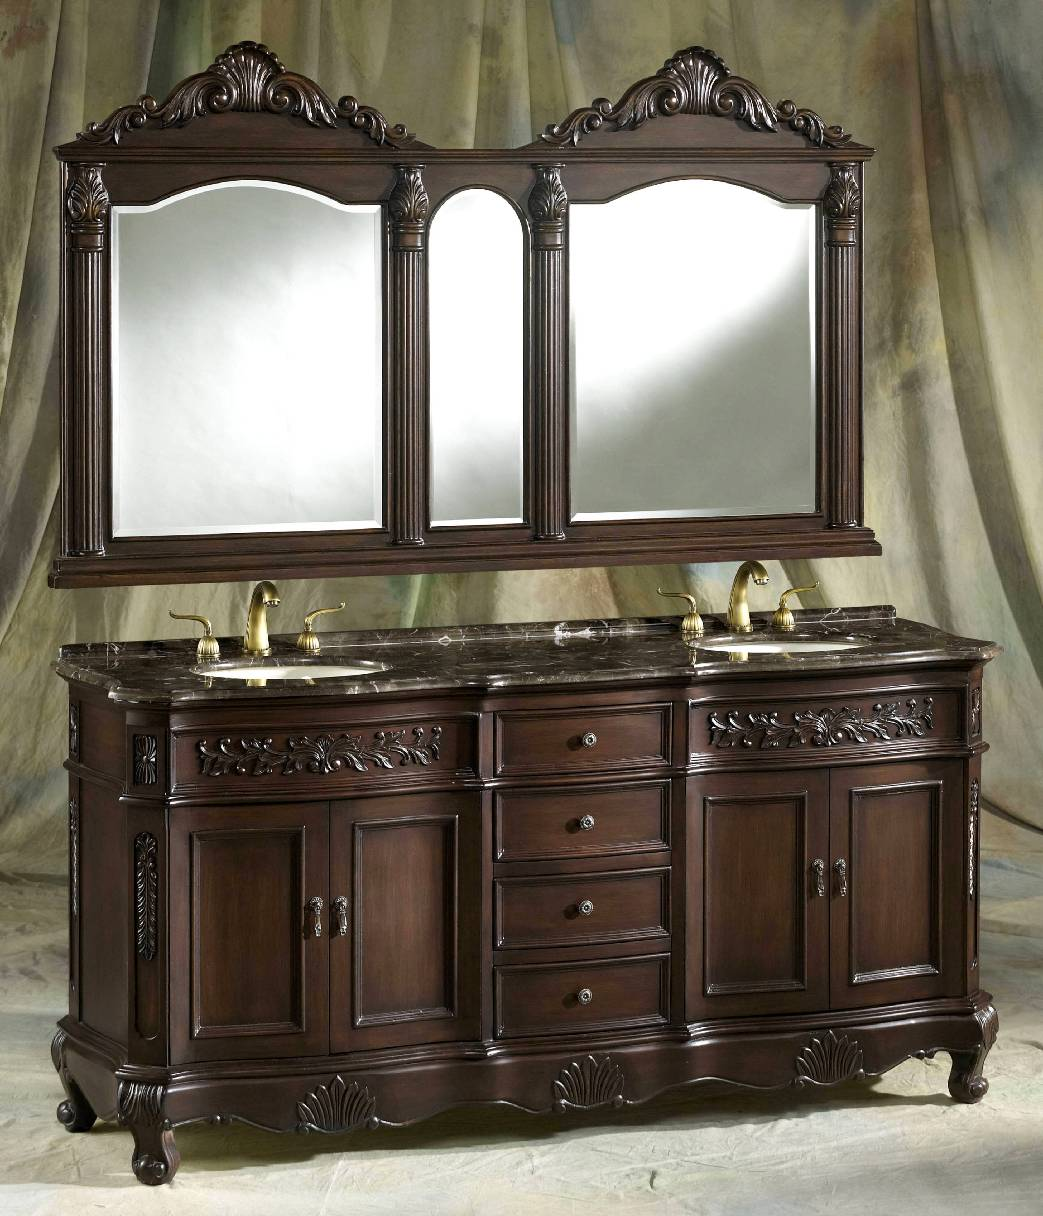 72 pressley vanity 72 inch double vanity dark sink vanity for Bathroom 72 inch vanity